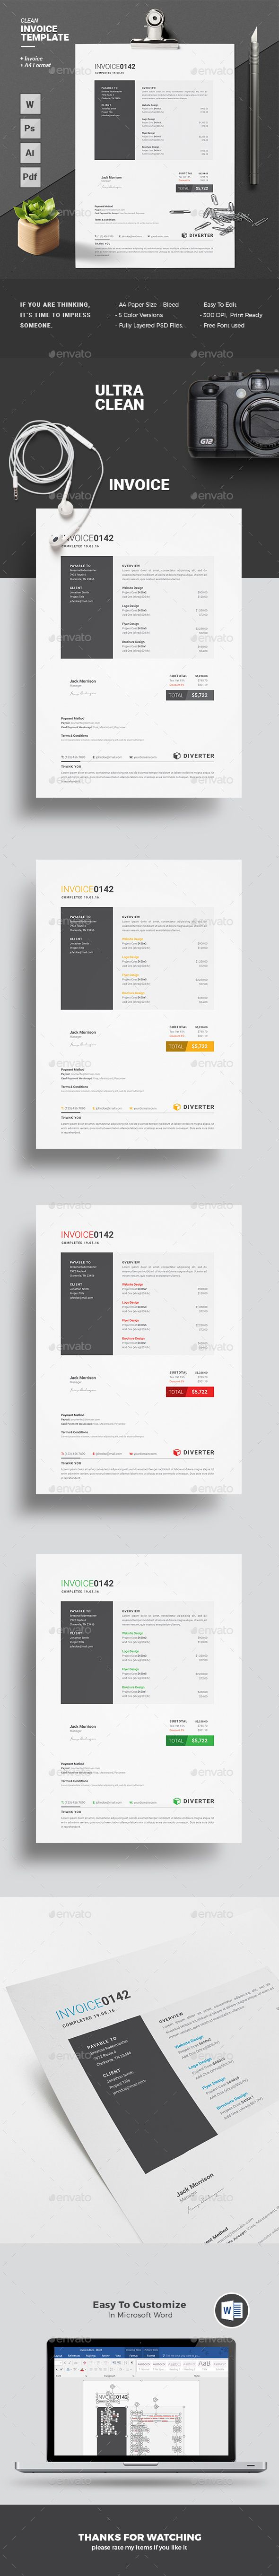 #Invoice - #Proposals & Invoices #Stationery Download here: https://graphicriver.net/item/invoice/17838622?ref=artgallery8